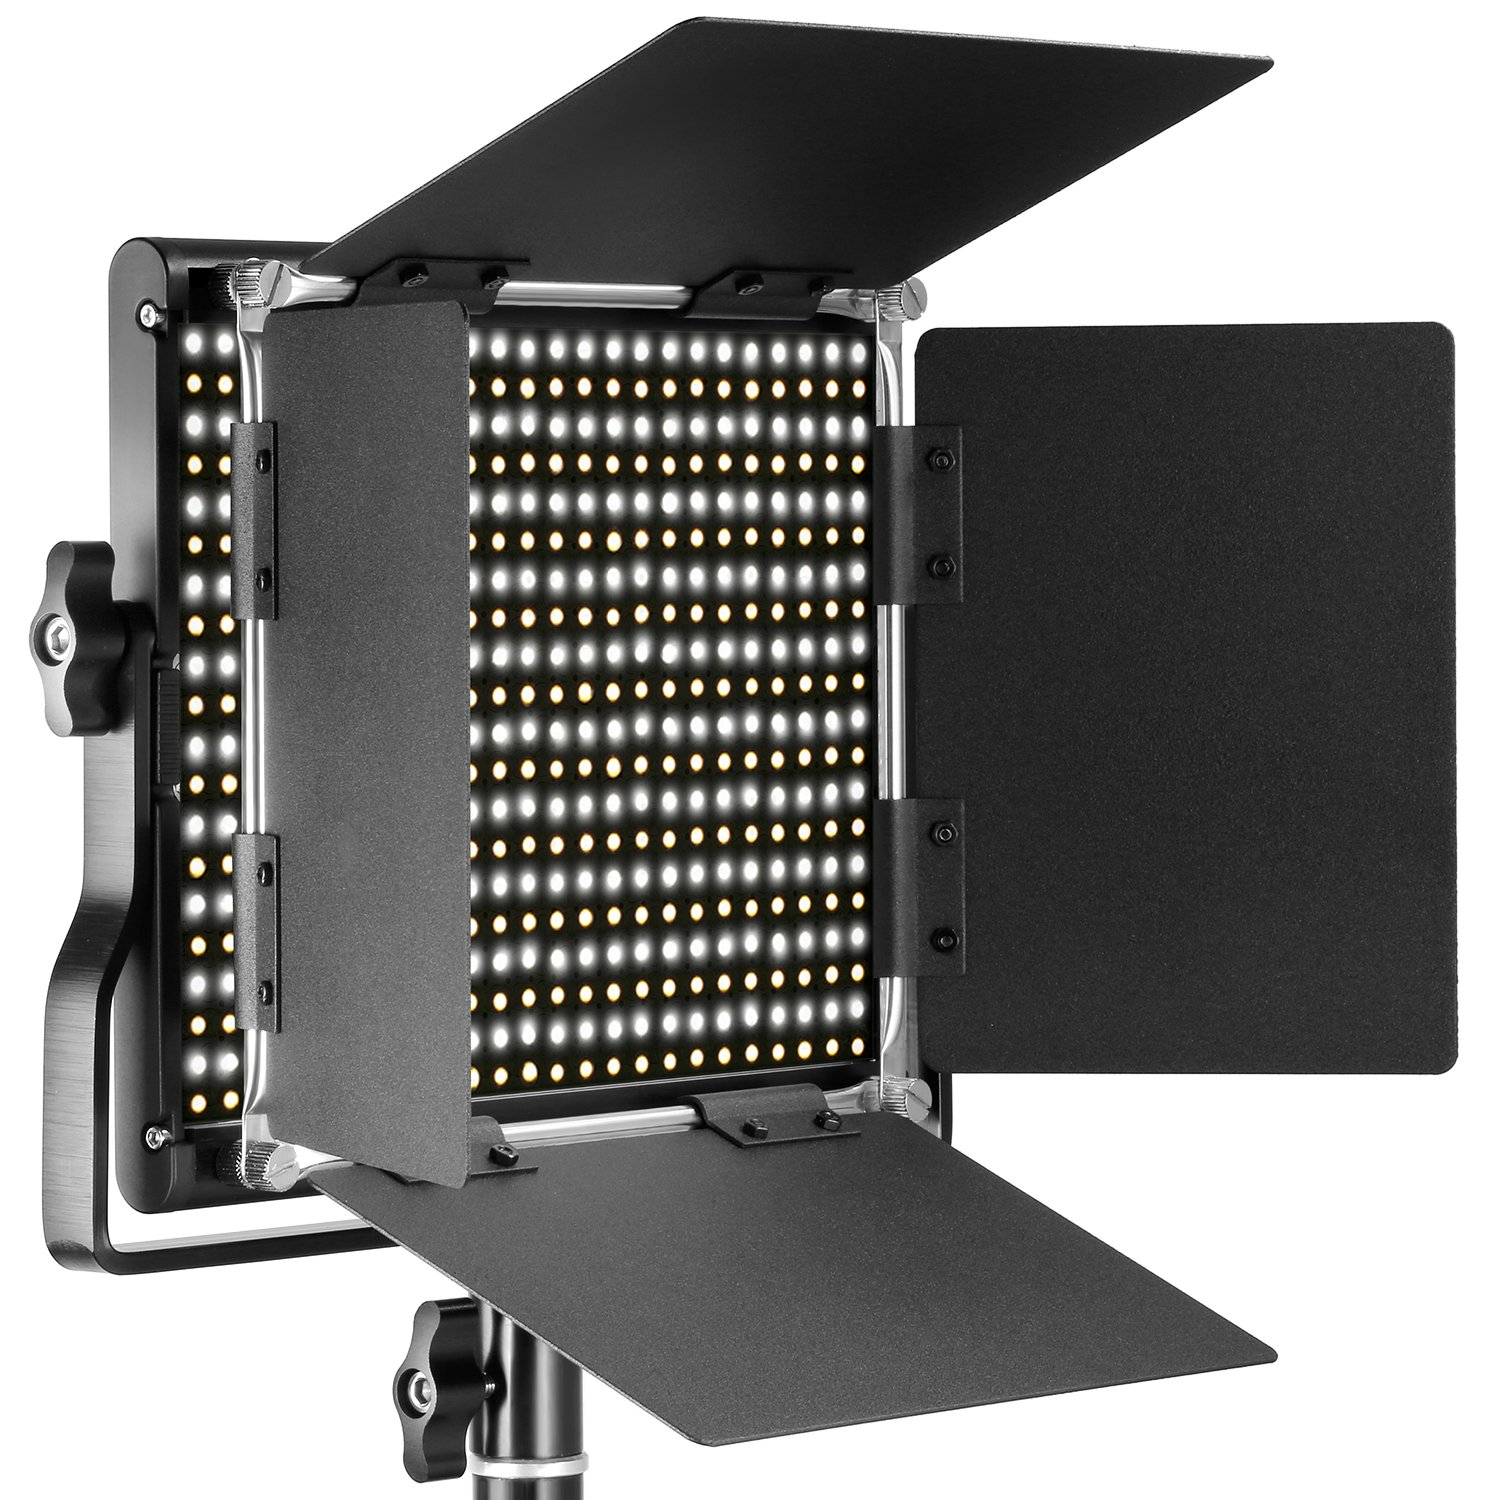 Neewer Professional Metal Bi Color Led Video Light For Options Solid Leds Studio Youtube Product Photography Shooting Durable Frame Dimmable 660